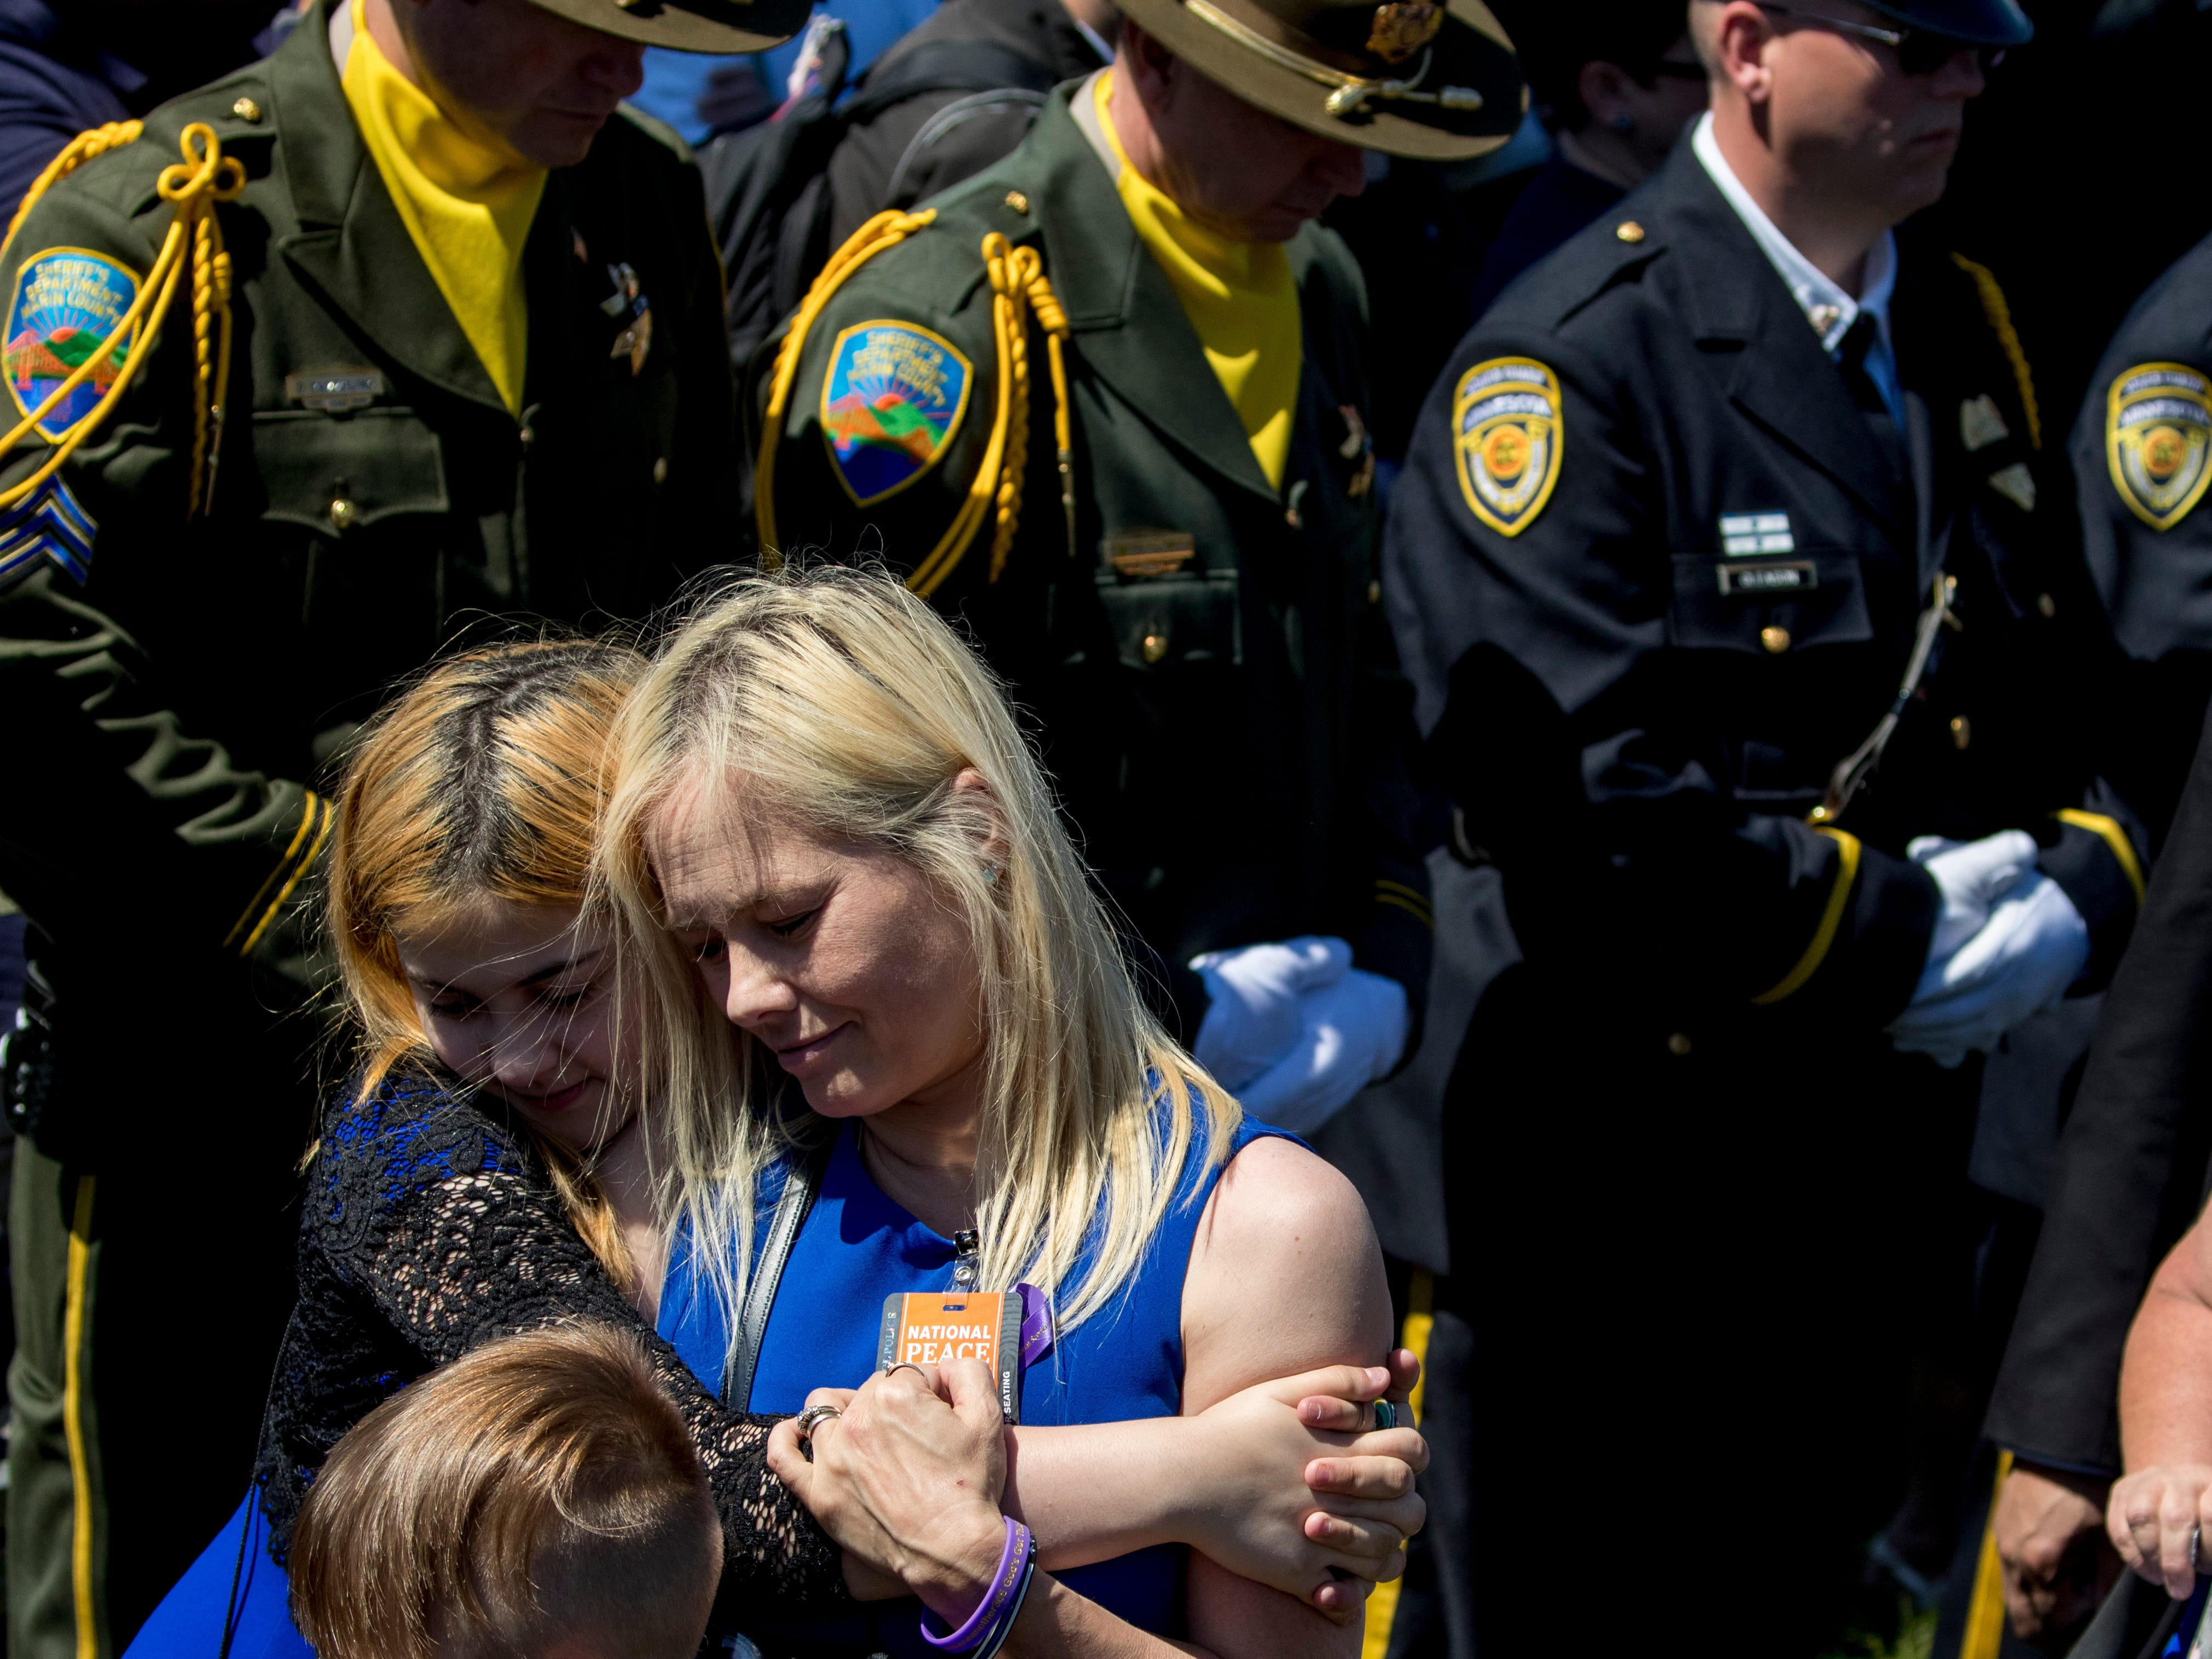 Families of fallen police officers arrive at the 38th Annual National Peace Officers Memorial Service on the West Lawn of the Capitol Building, Wednesday, May 15, 2019, in Washington.